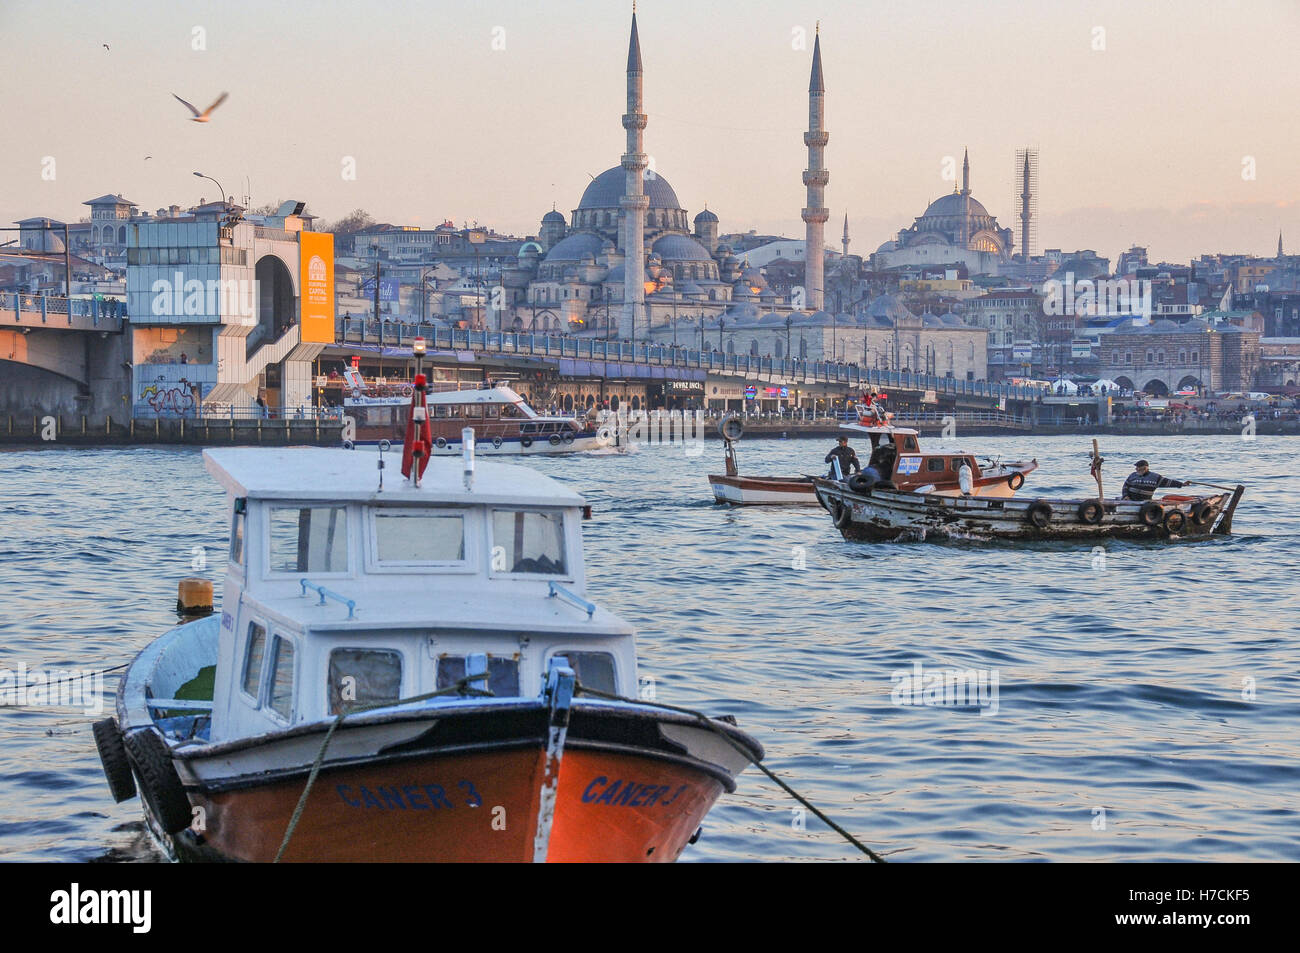 View of the Golden Horn. Part of Galata Bridge, and the New Mosque (Yeni Cami, in the middle of the image) can be - Stock Image